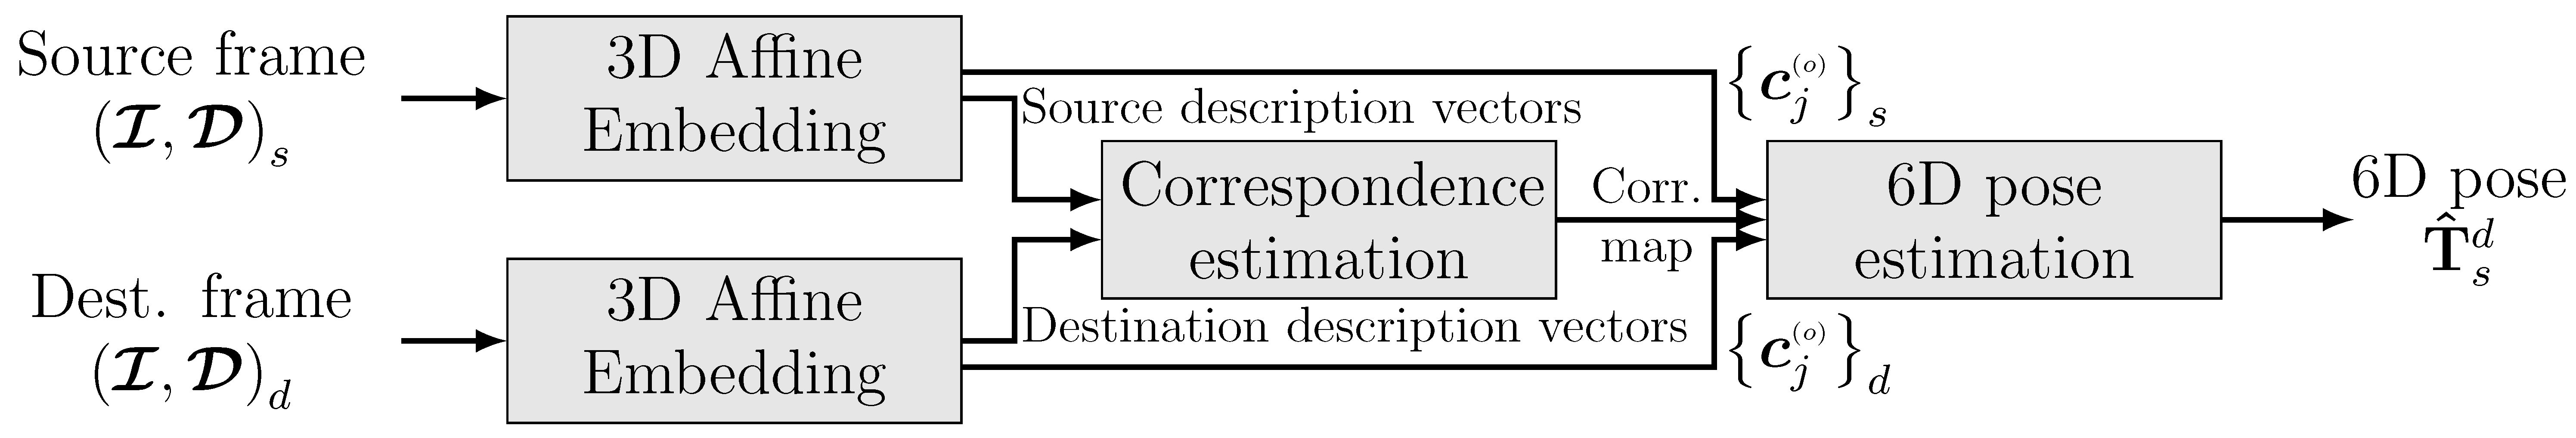 Sensors | Free Full-Text | 3D Affine: An Embedding of Local